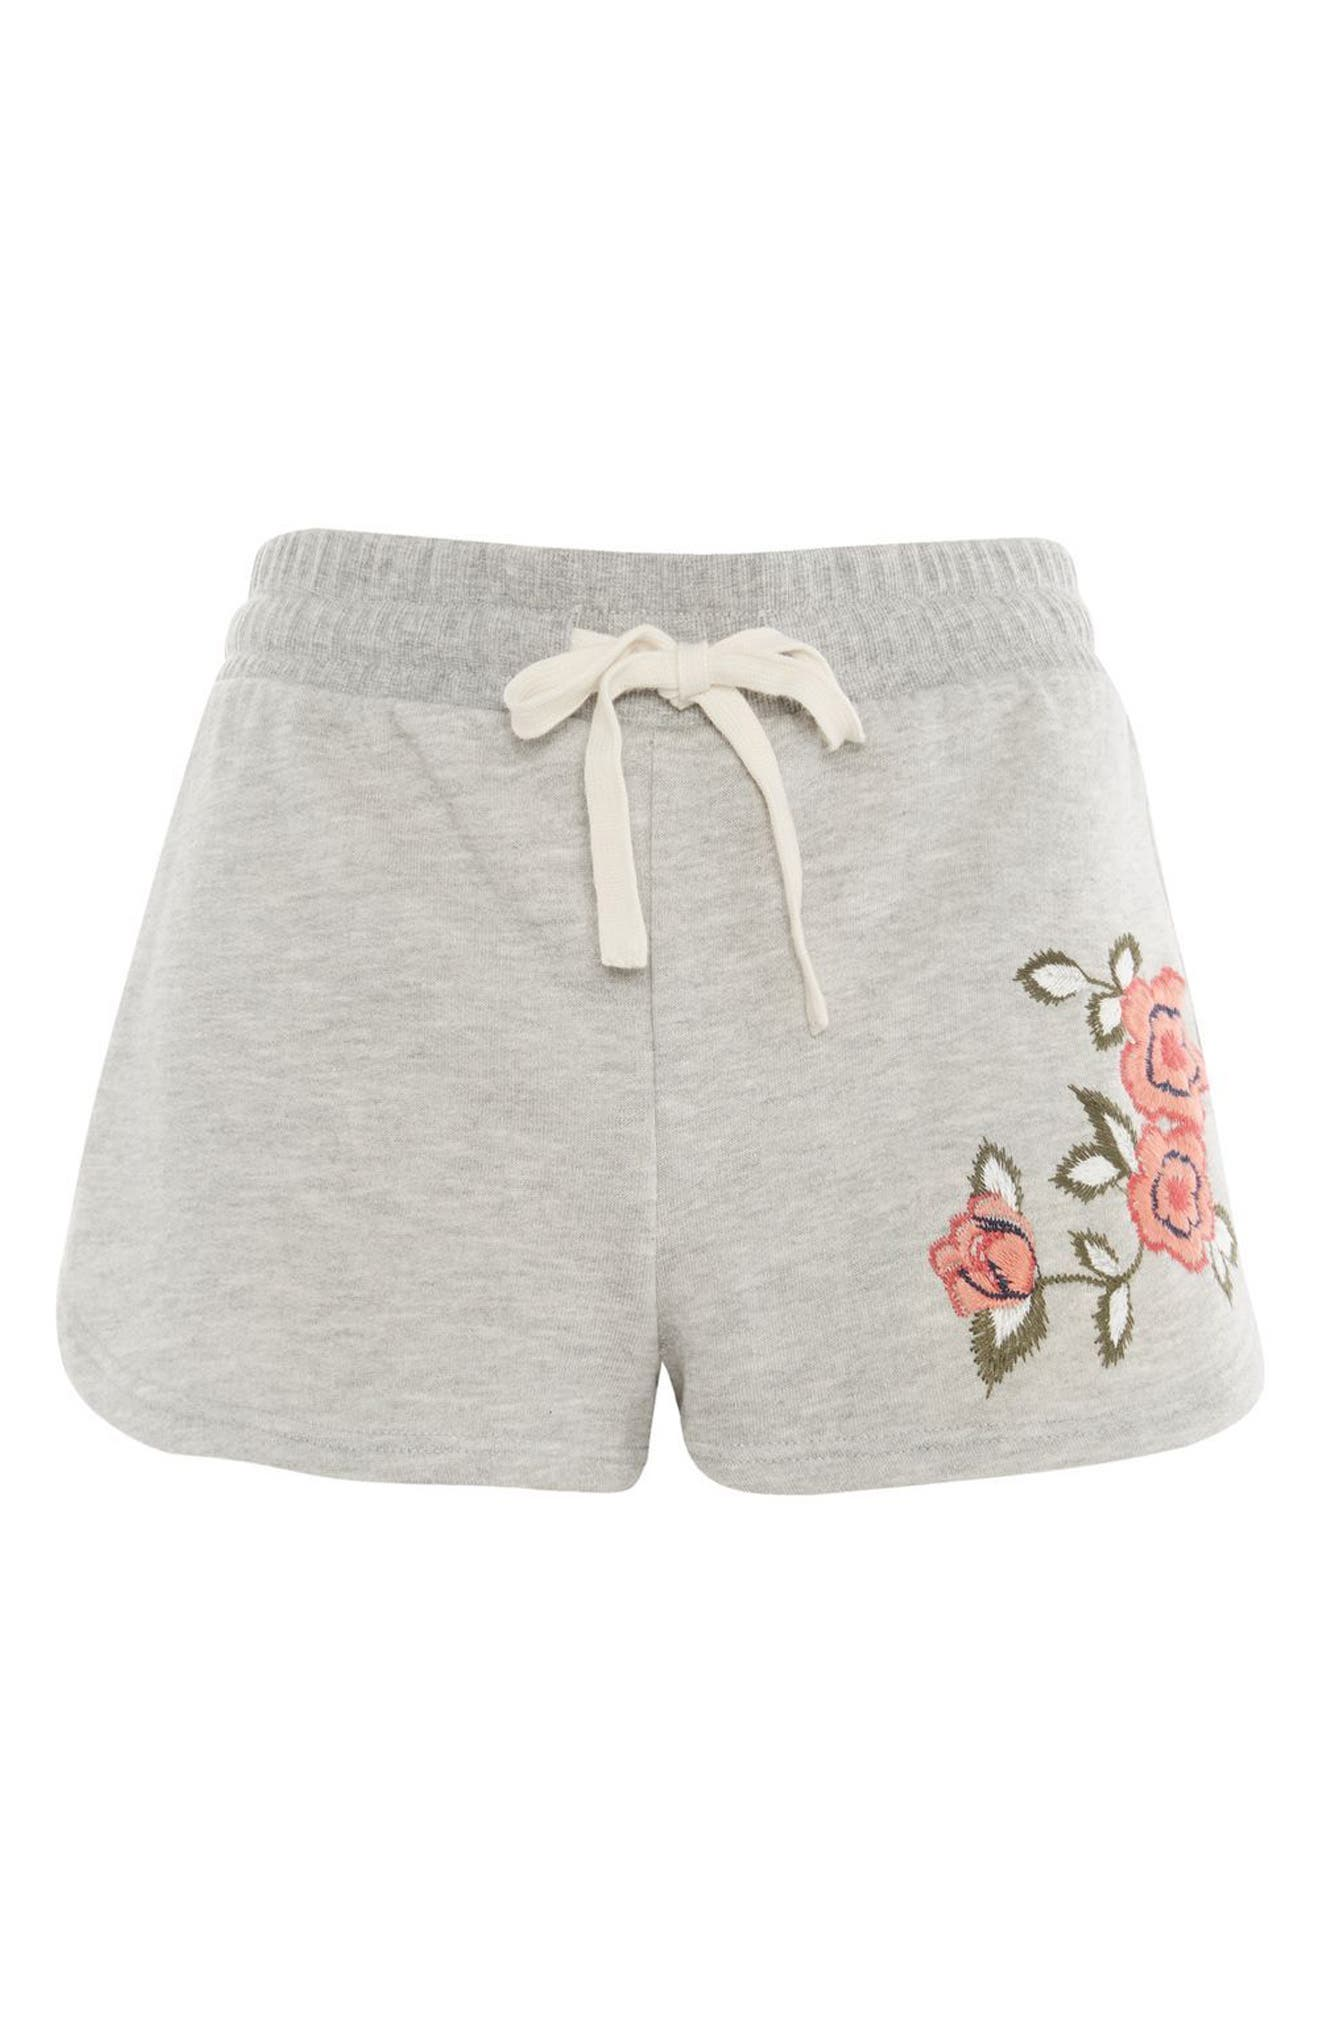 Floral Embroidered Lounge Shorts,                         Main,                         color, Grey Multi